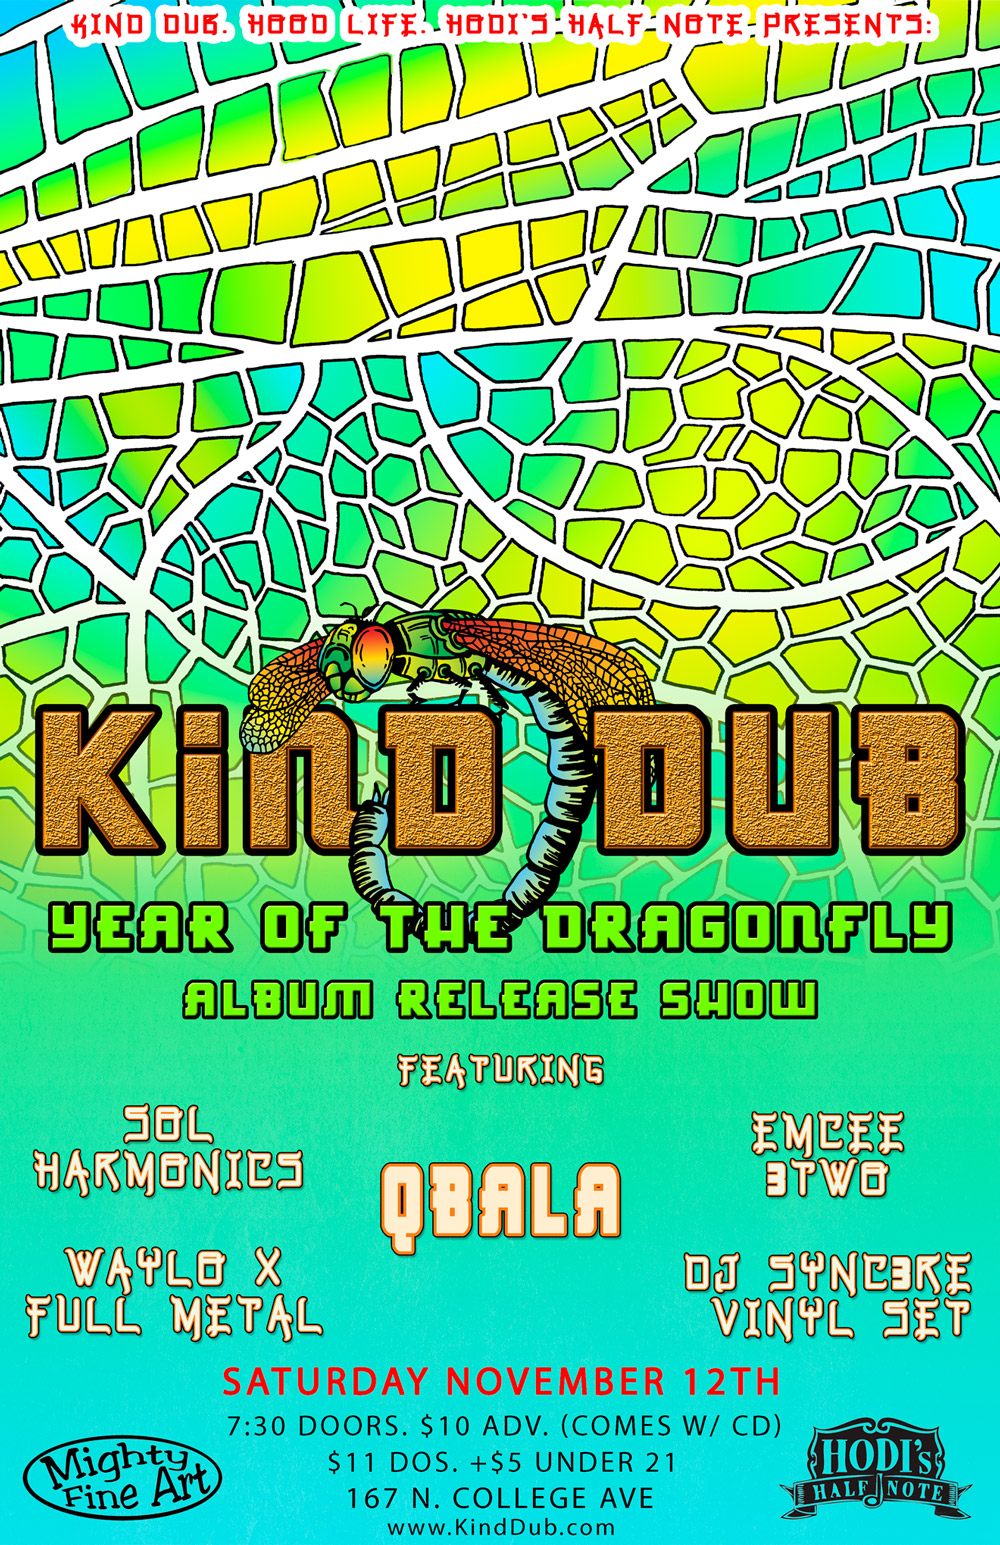 Kind-Dub-Year-Of-The-Dragonfly-Release-Poster-web